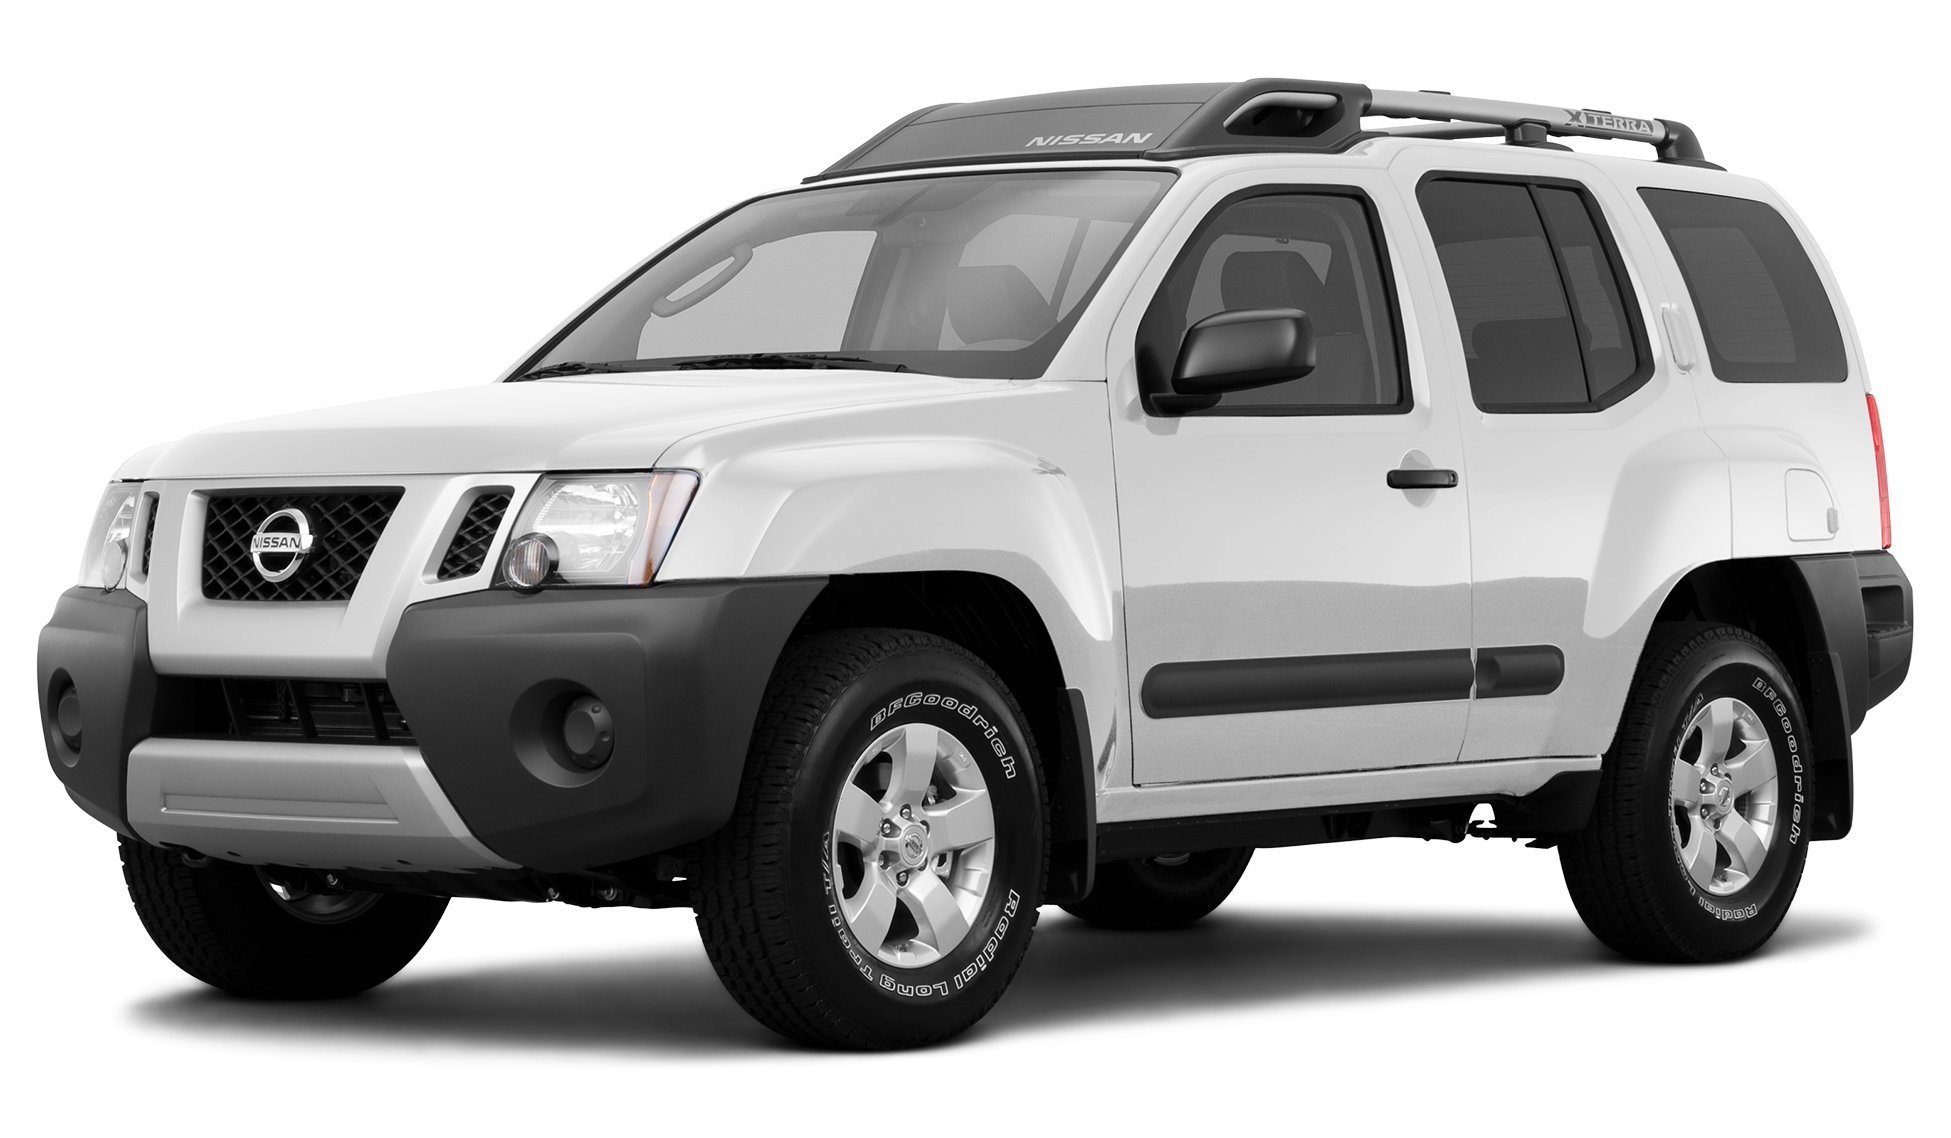 Amazon.com: 2011 Nissan Xterra Pro-4X Reviews, Images, and Specs: VehiclesAmazon.com